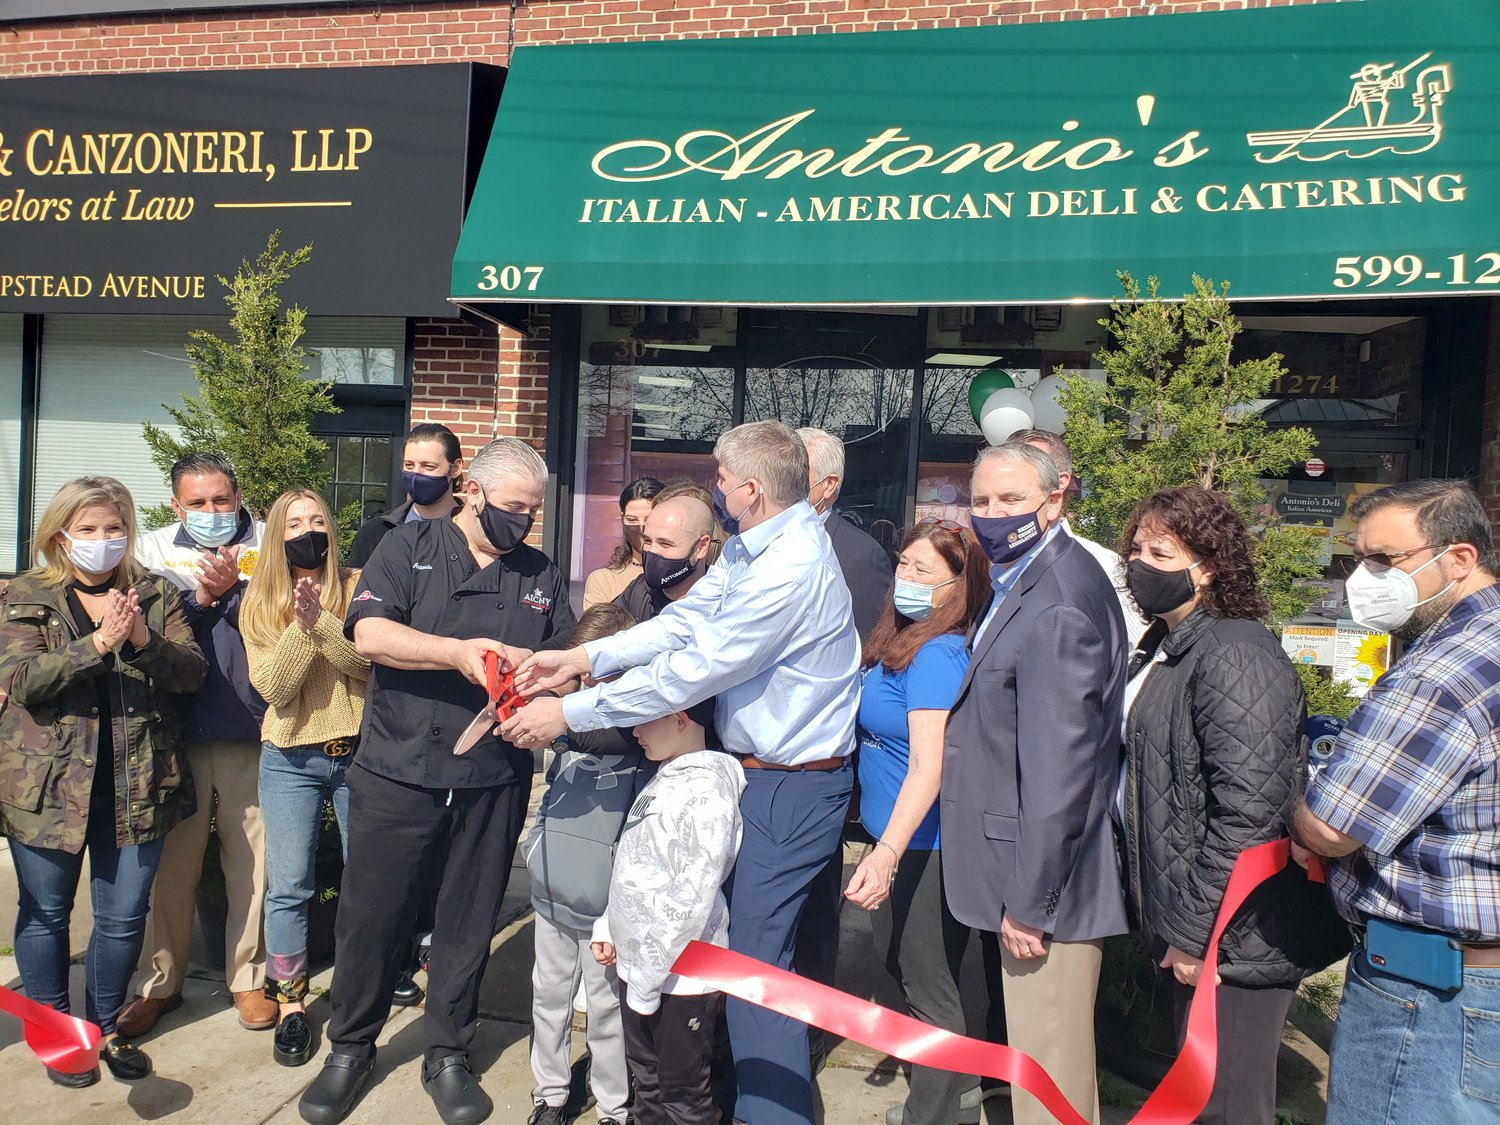 Antonio's Deli owner Antonio Bove, in black at left, and Malverne Mayor Keith Corbett, joined by local elected officials, held a ribbon-cutting ceremony to celebrate the deli's 20th anniversary last Saturday.